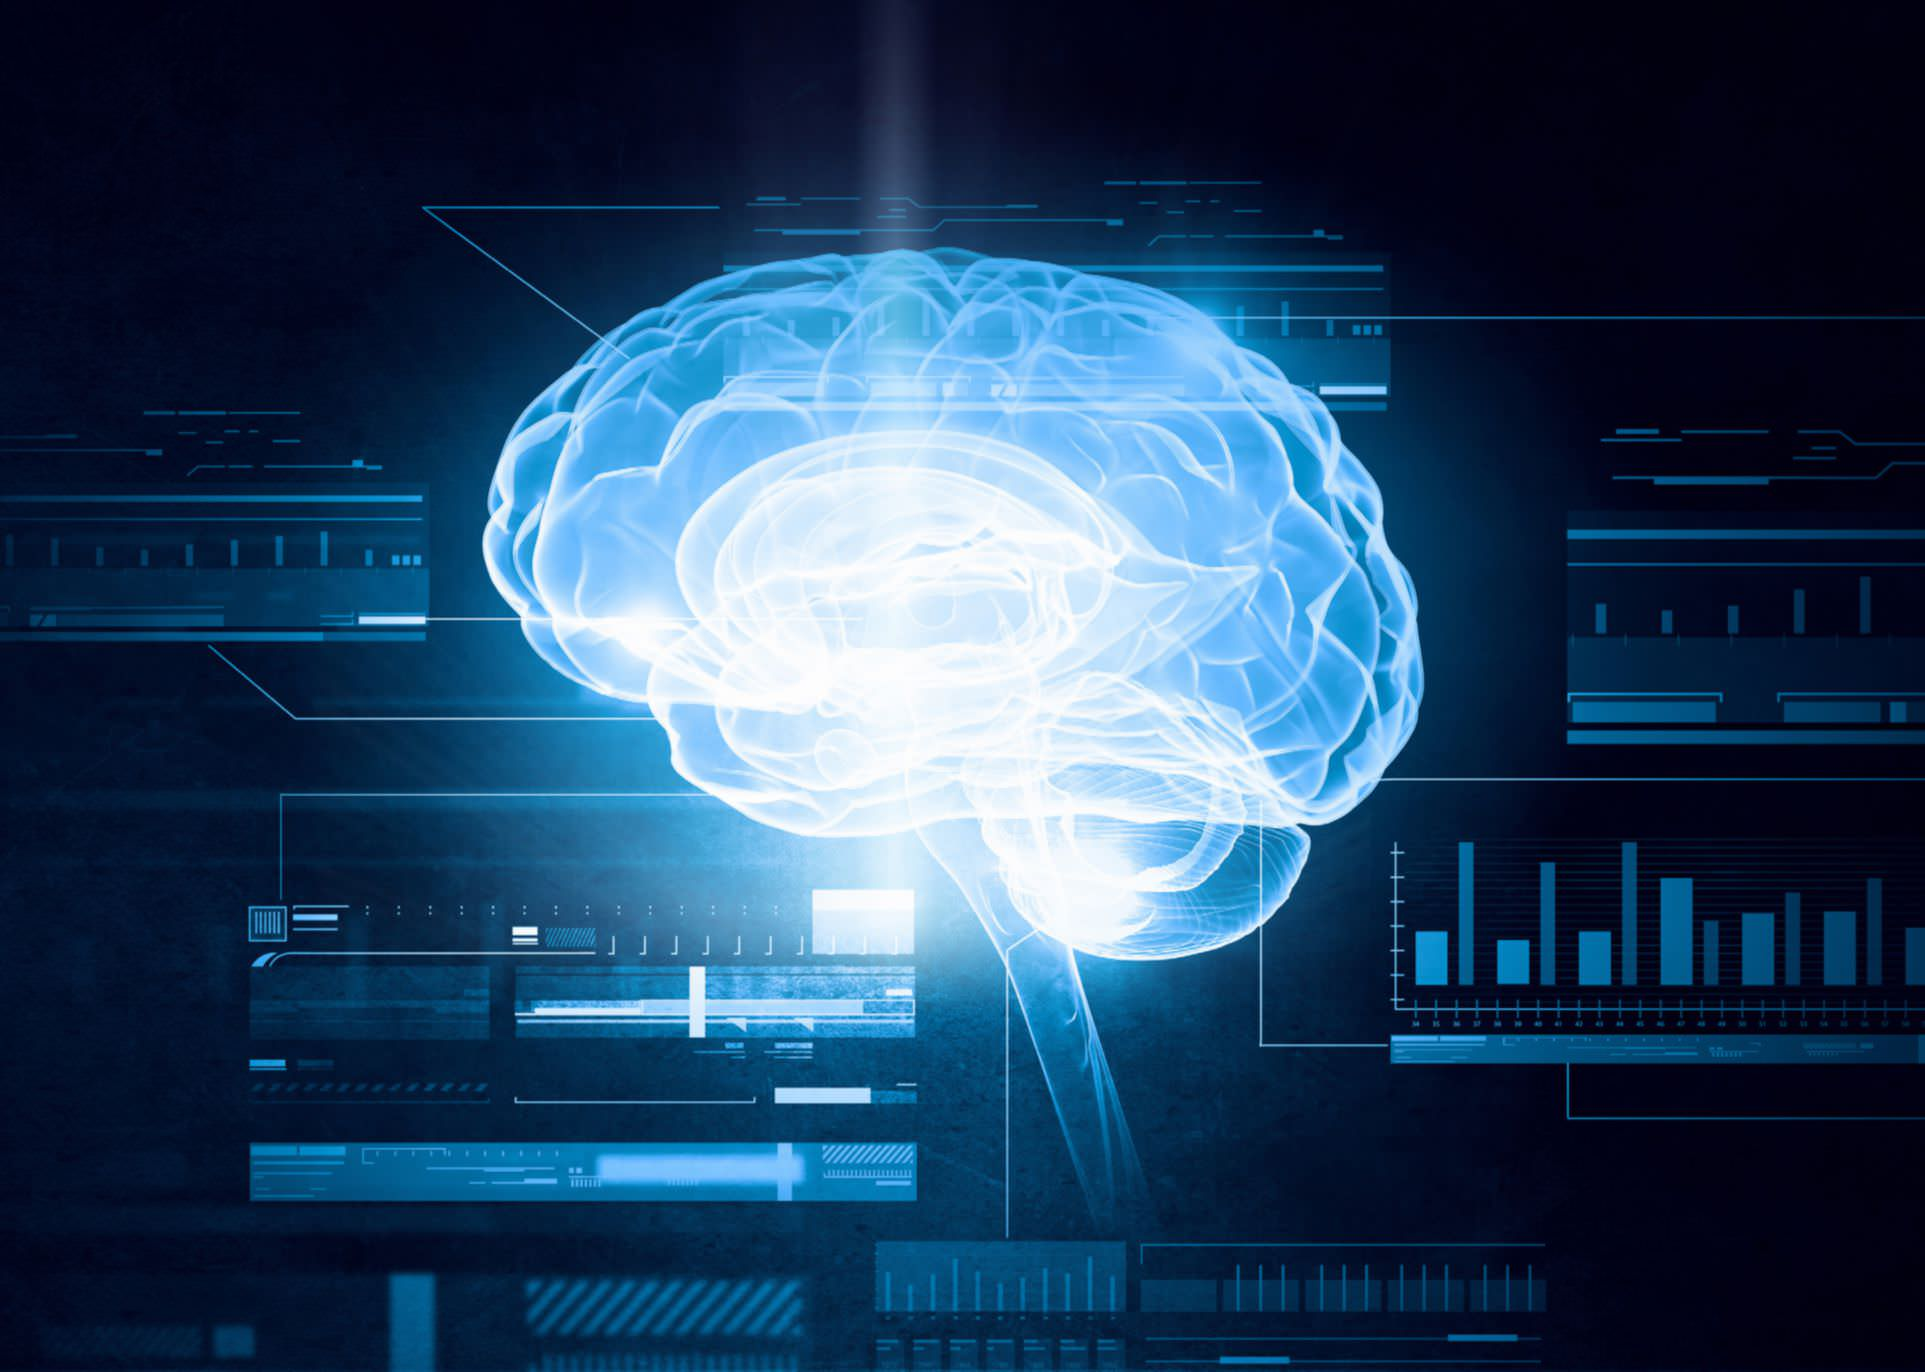 Elon Musk Wants To Implant An Ai Interface In Your Brain